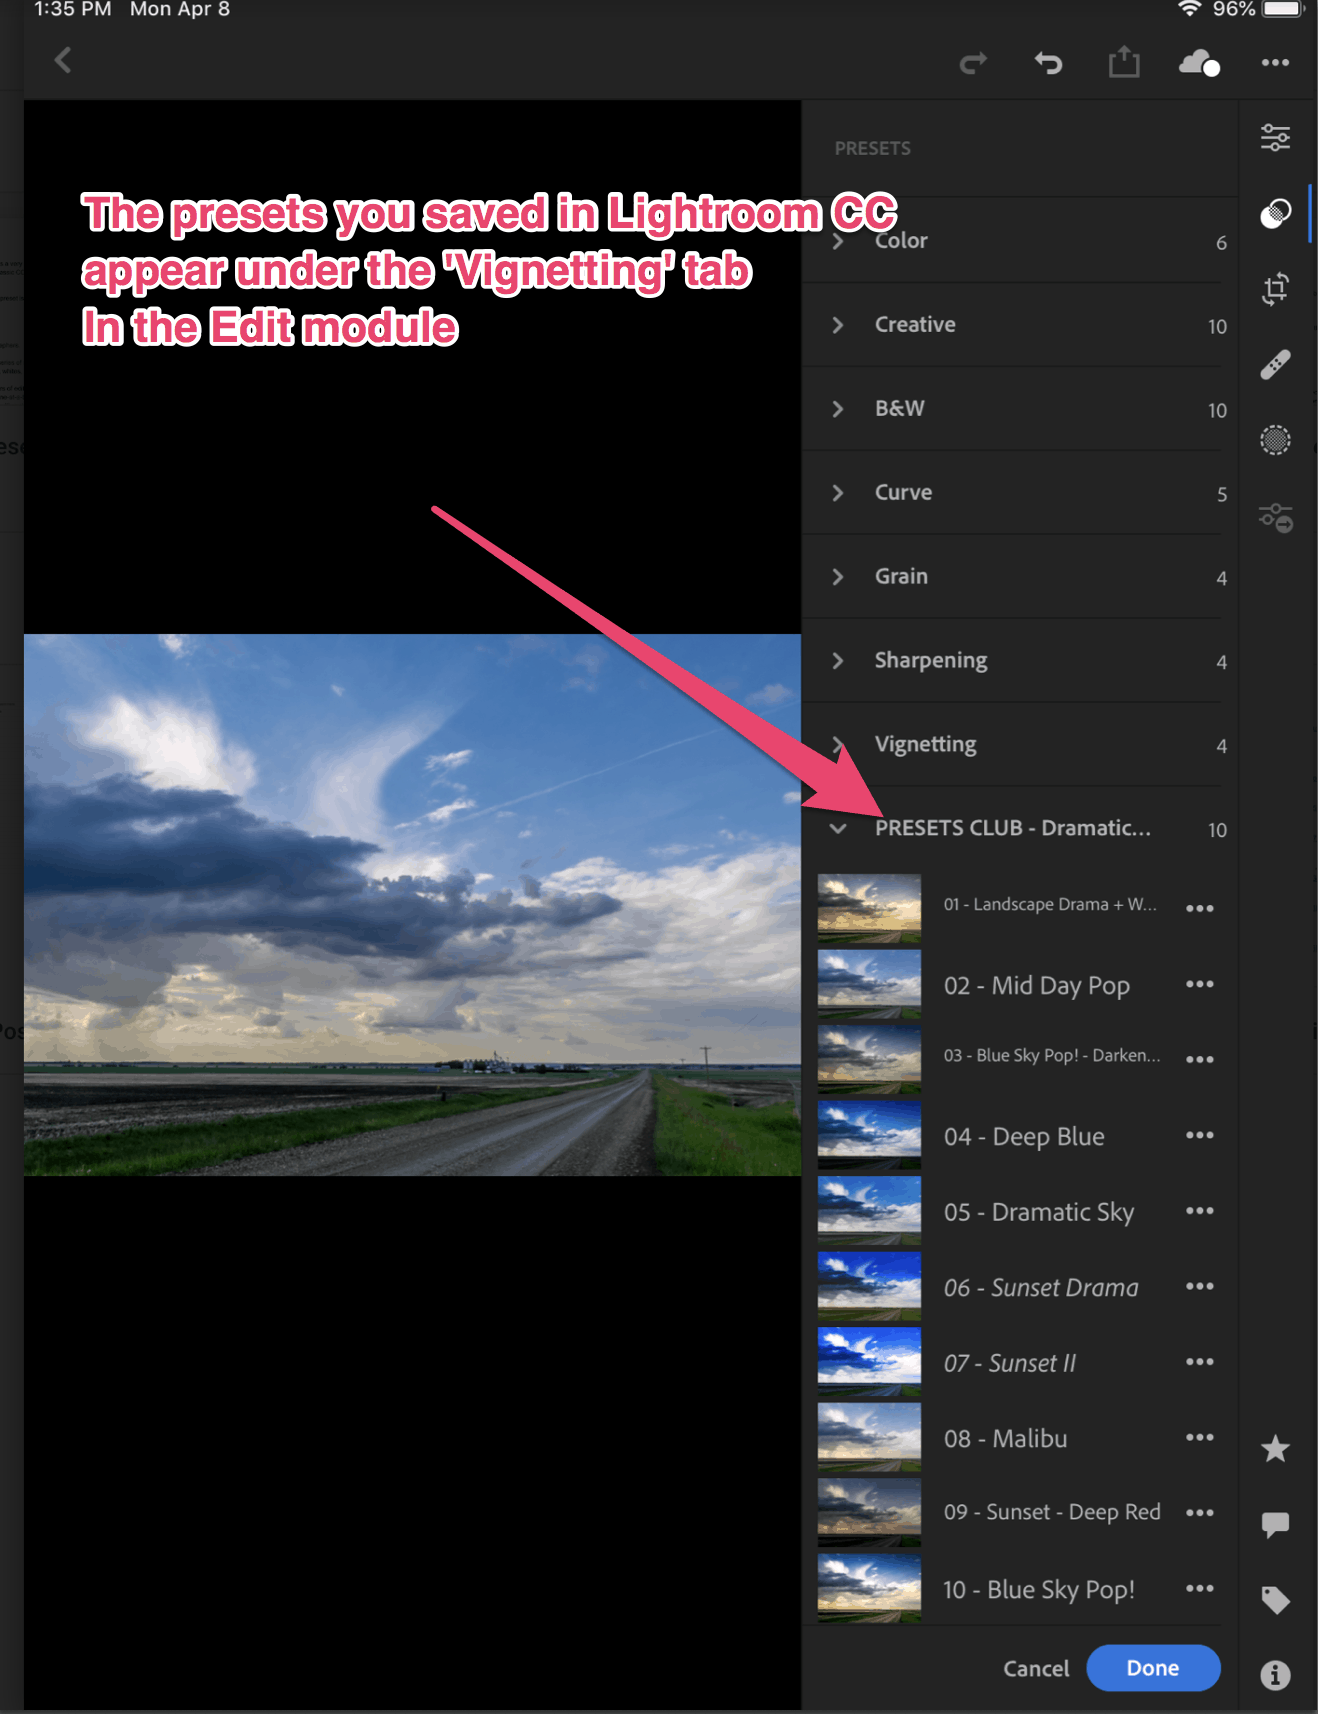 How to import presets to lightroom